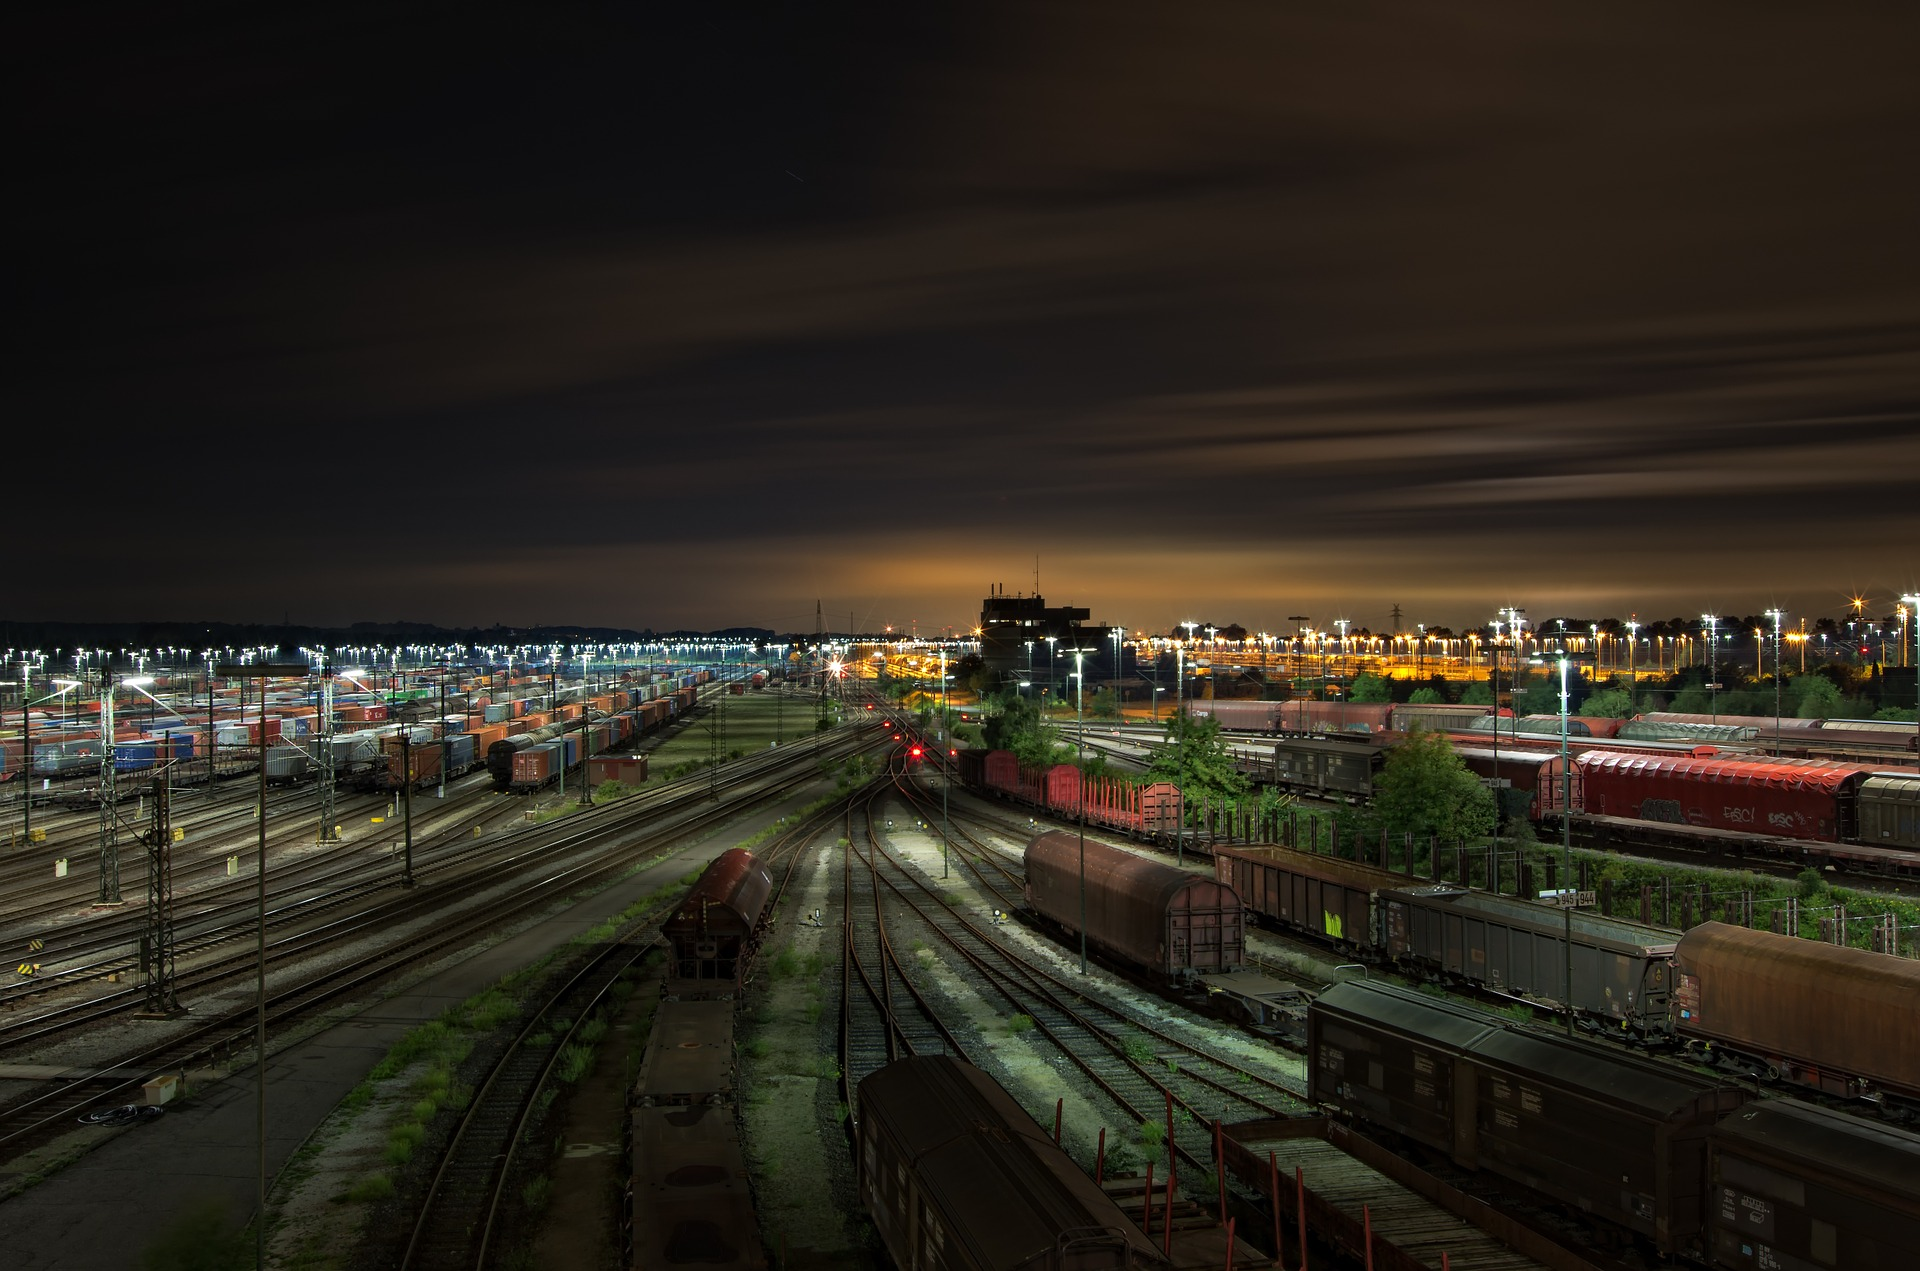 Rail shipping in Los Angeles, Rail Freight in Los Angeles